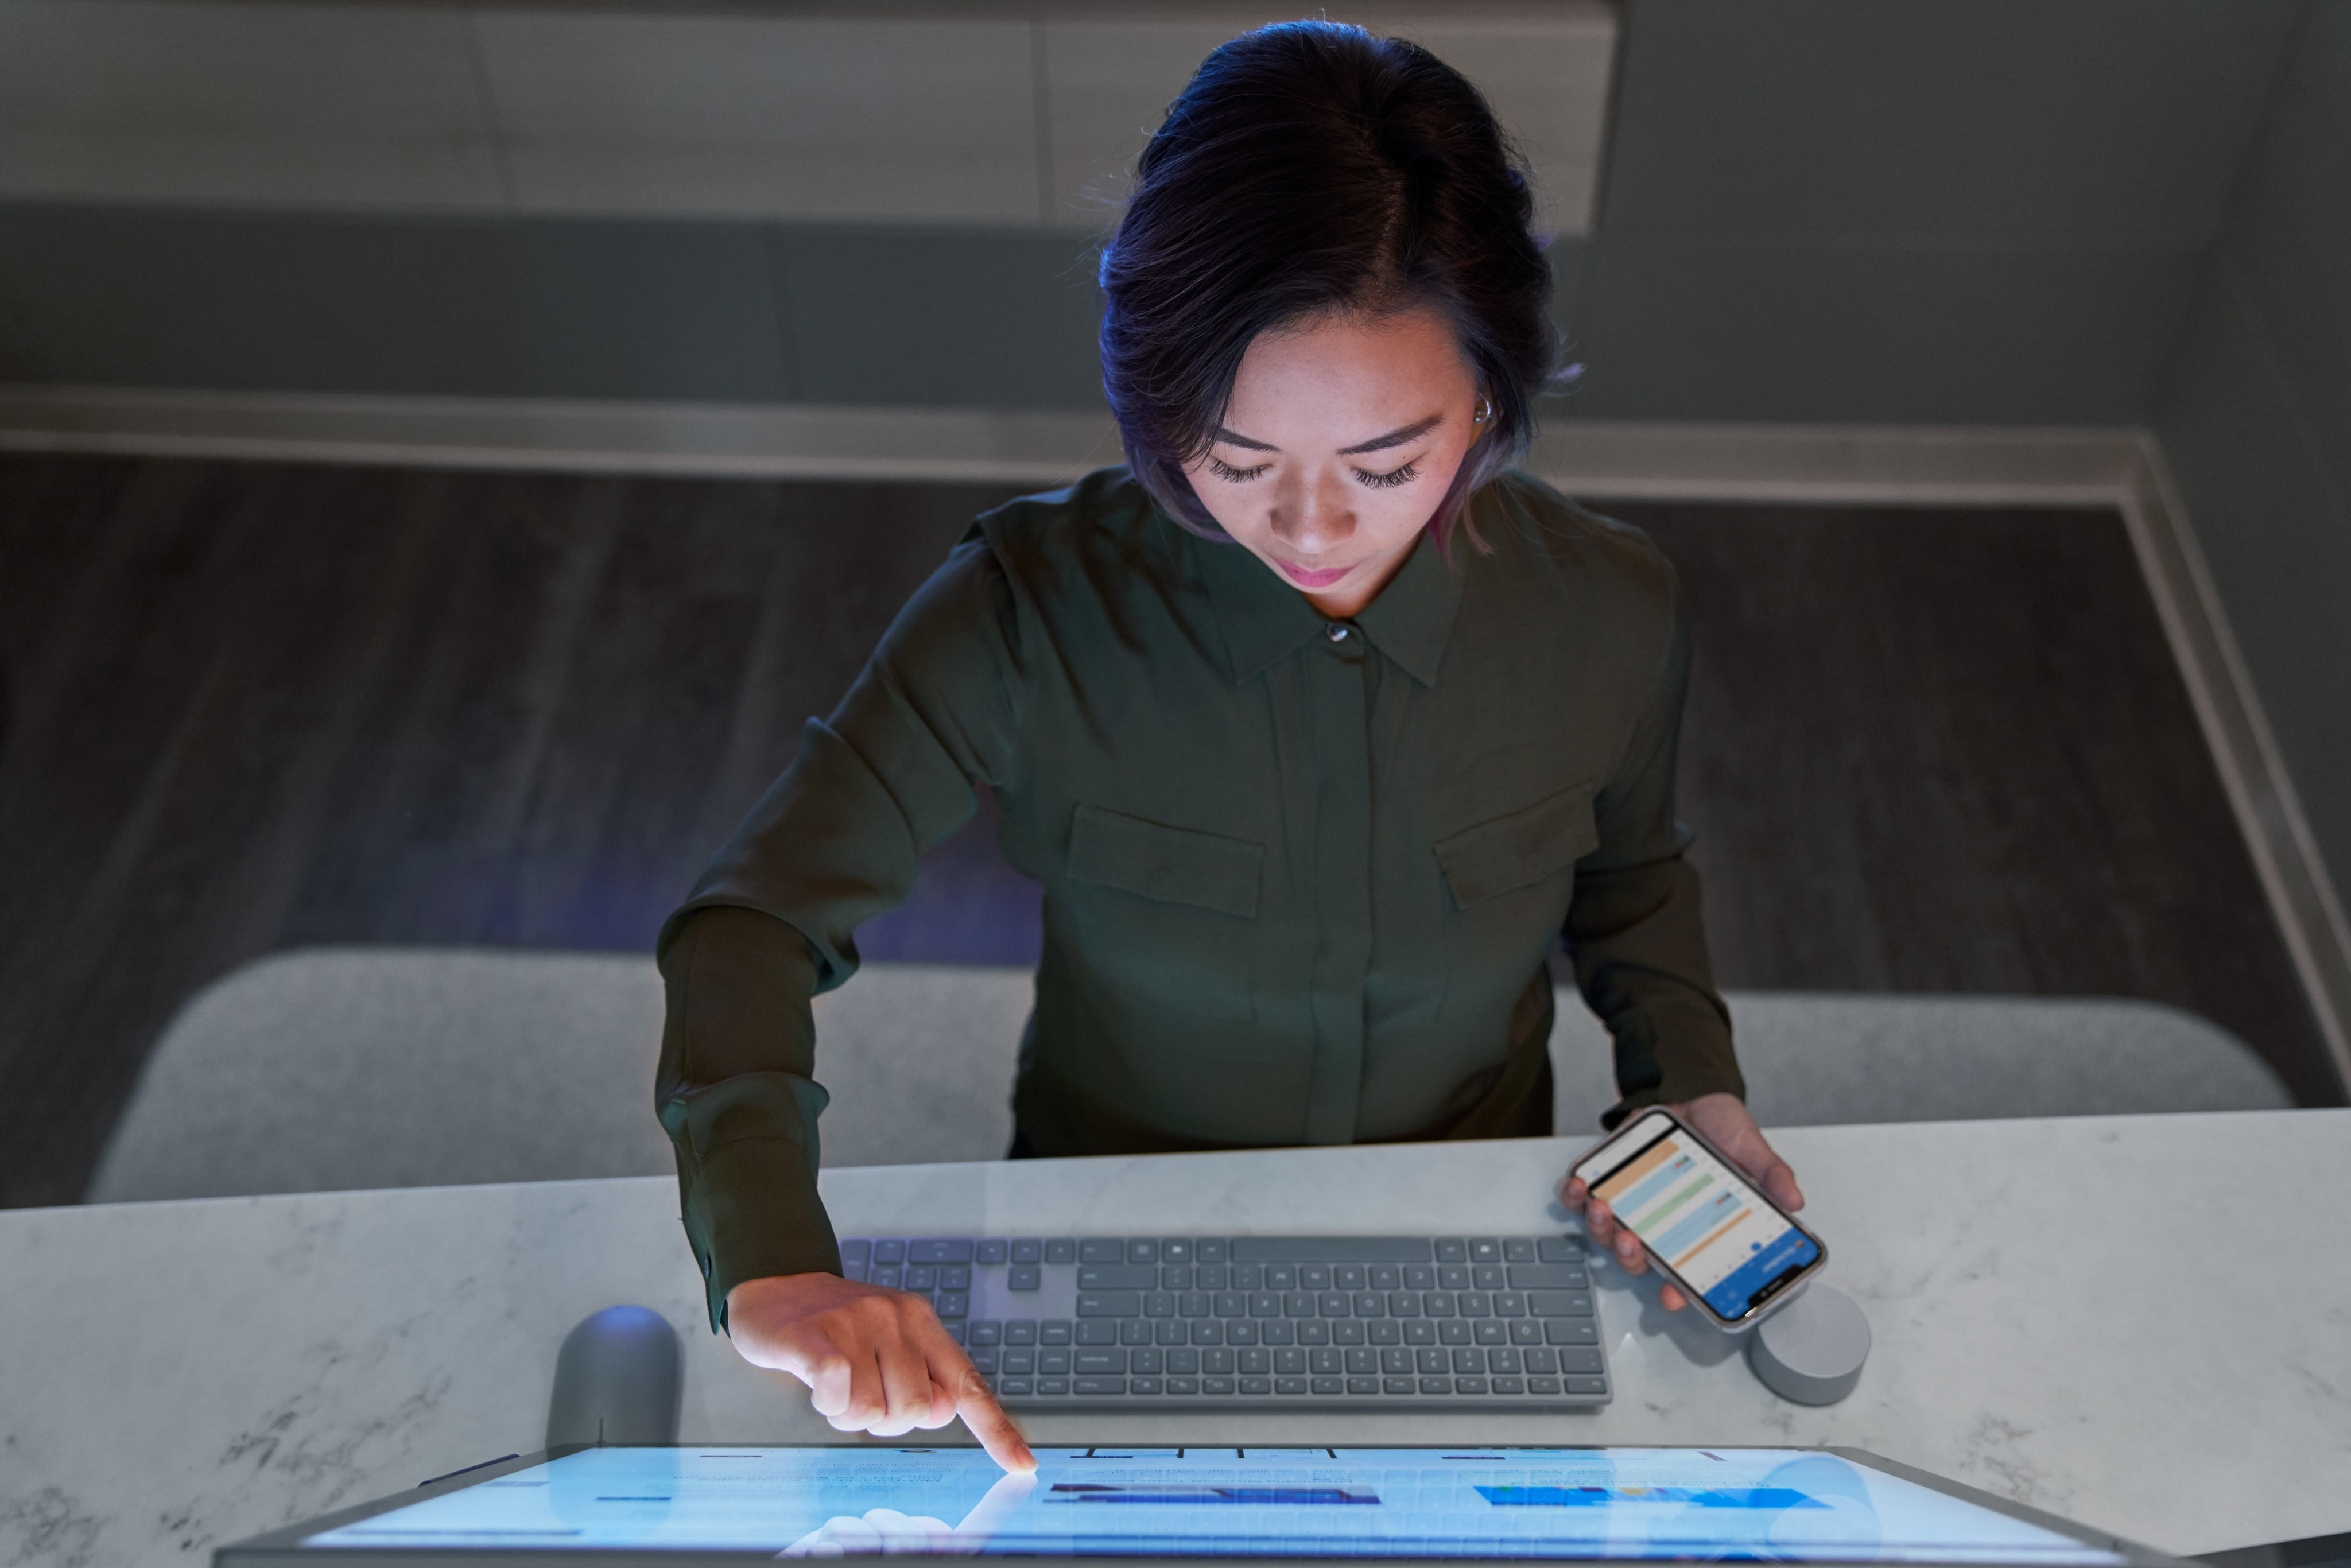 Top down view of a woman wearing a dark shirt in a dim office scrolling or working on a Microsoft Surface Studio and holding a phone.